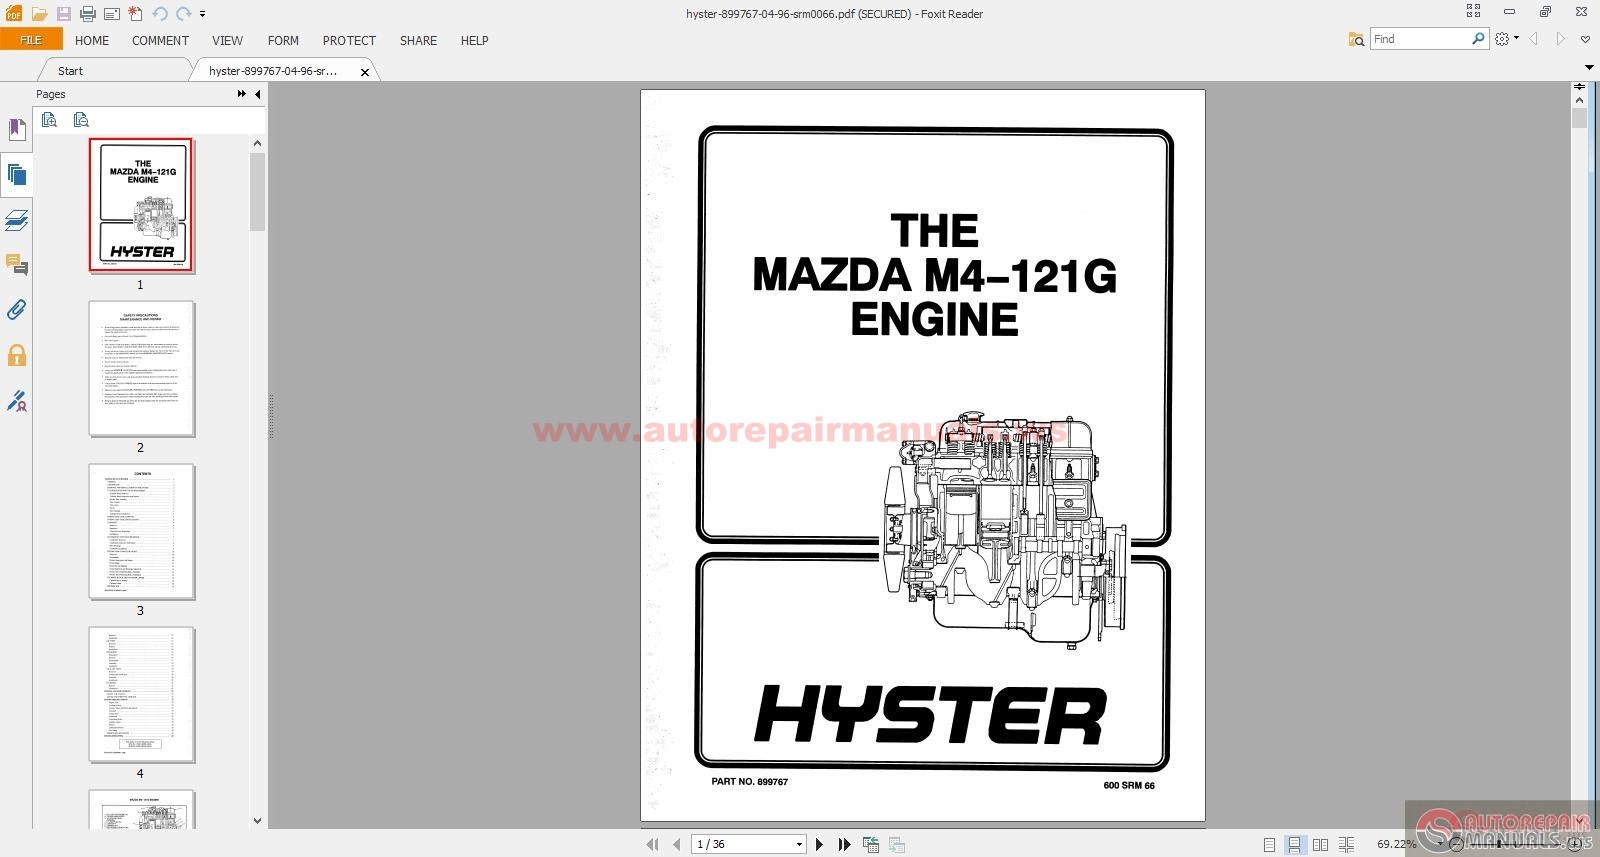 hyster service manual 60 images reverse search. Black Bedroom Furniture Sets. Home Design Ideas